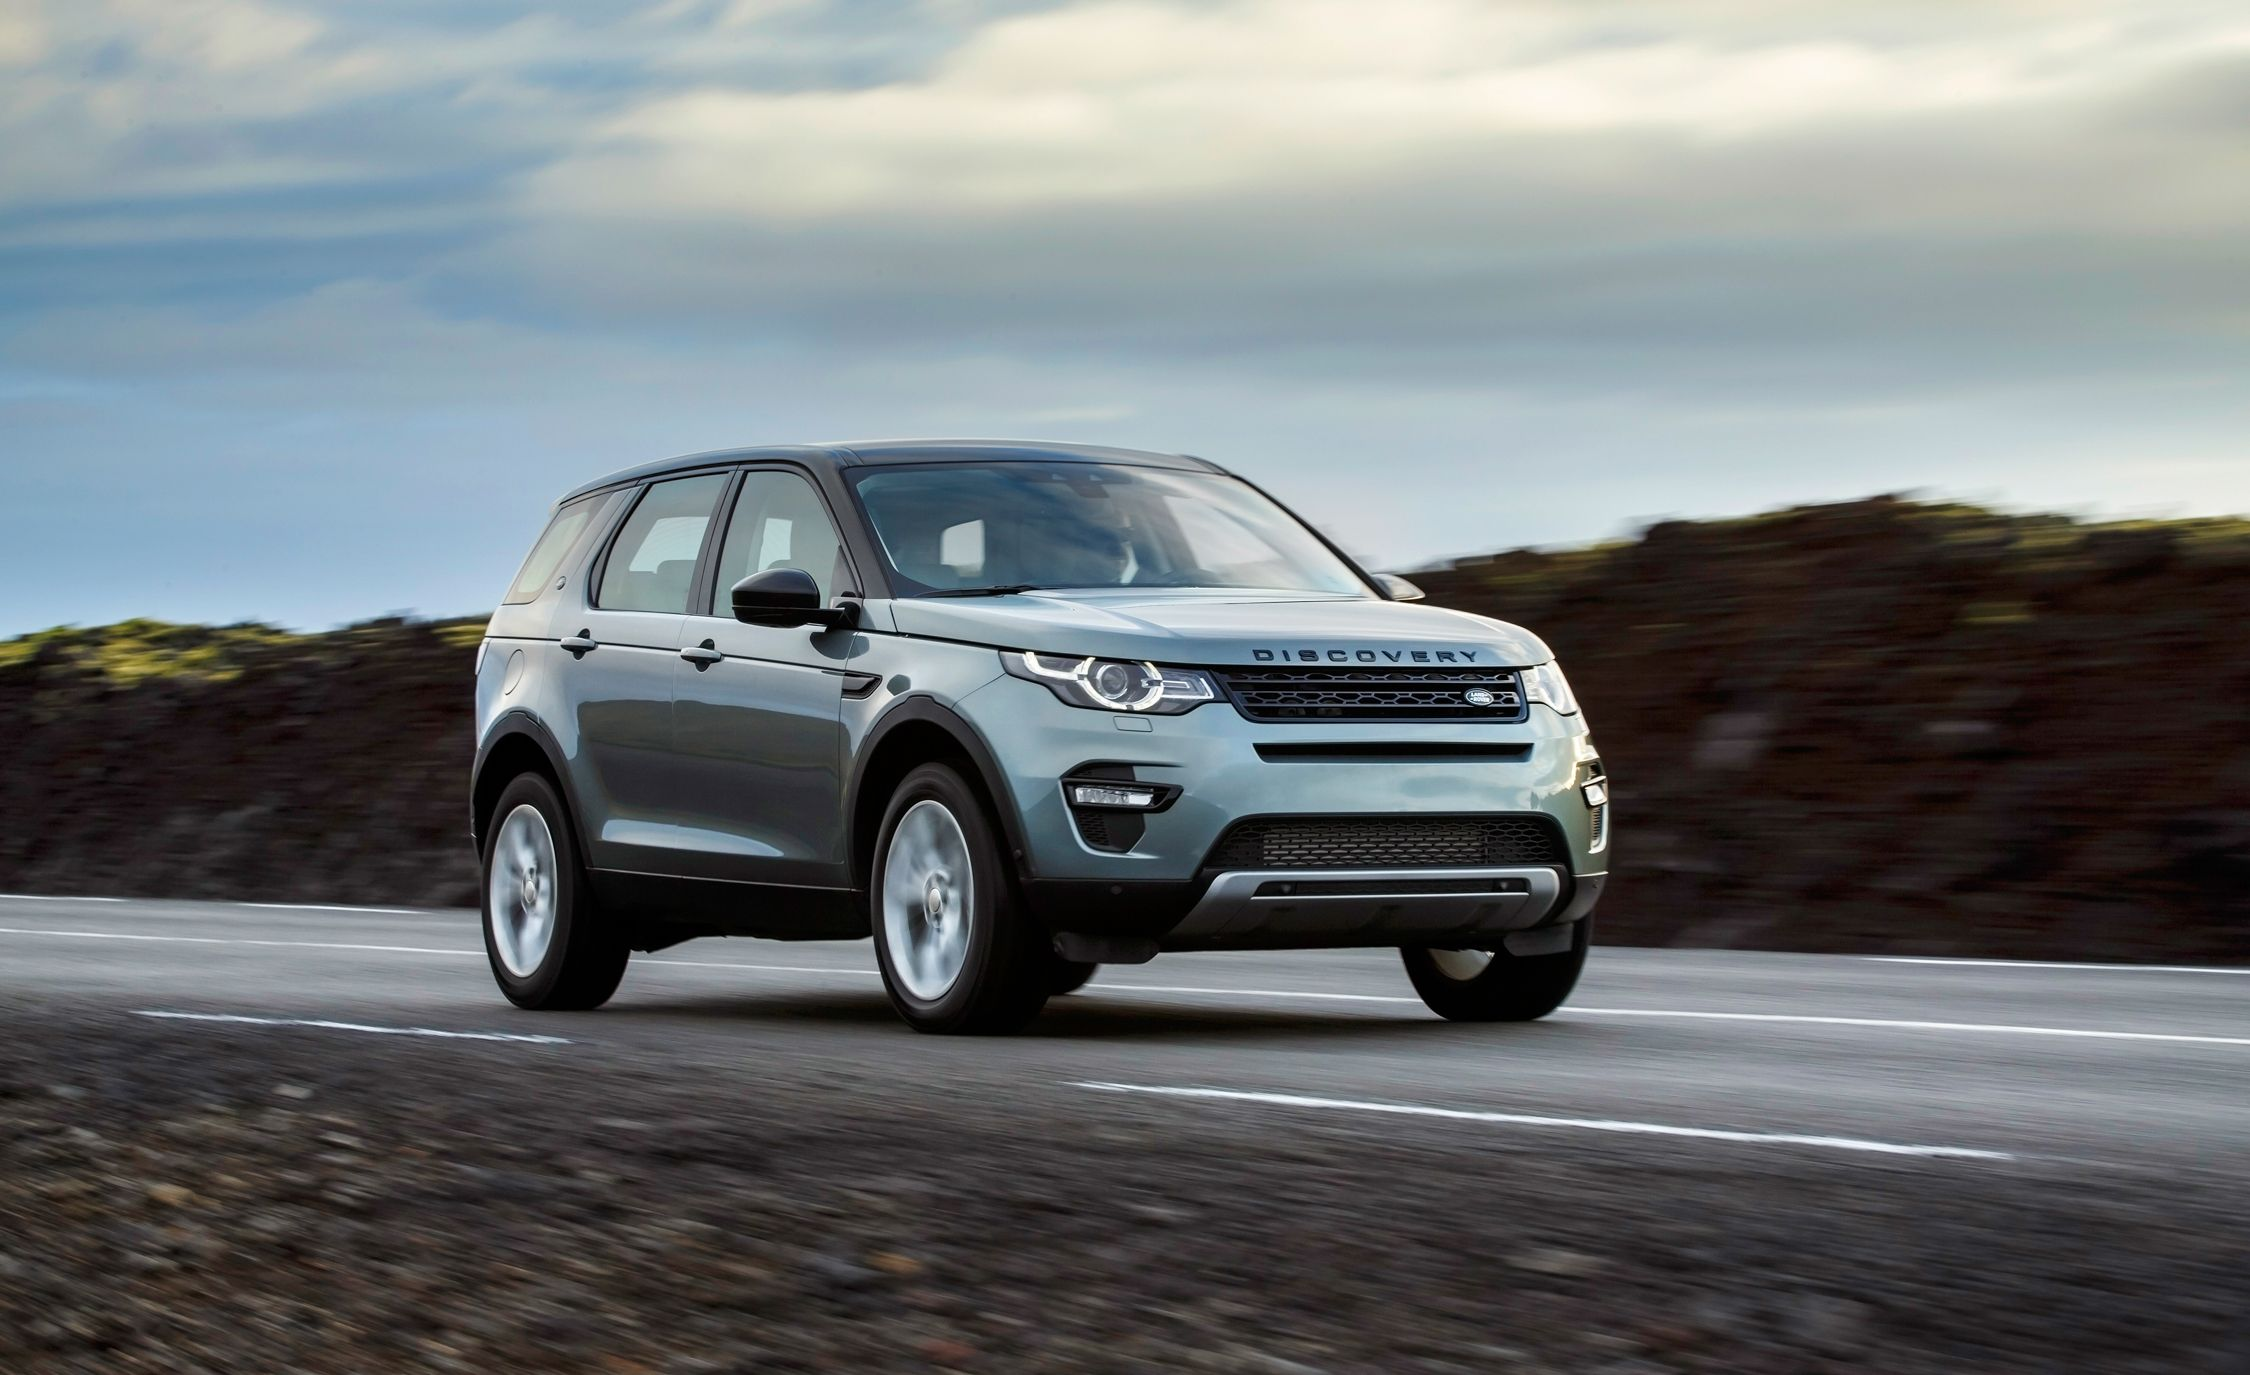 Land Rover Discovery Sport U S Pricing Released – News – Car and